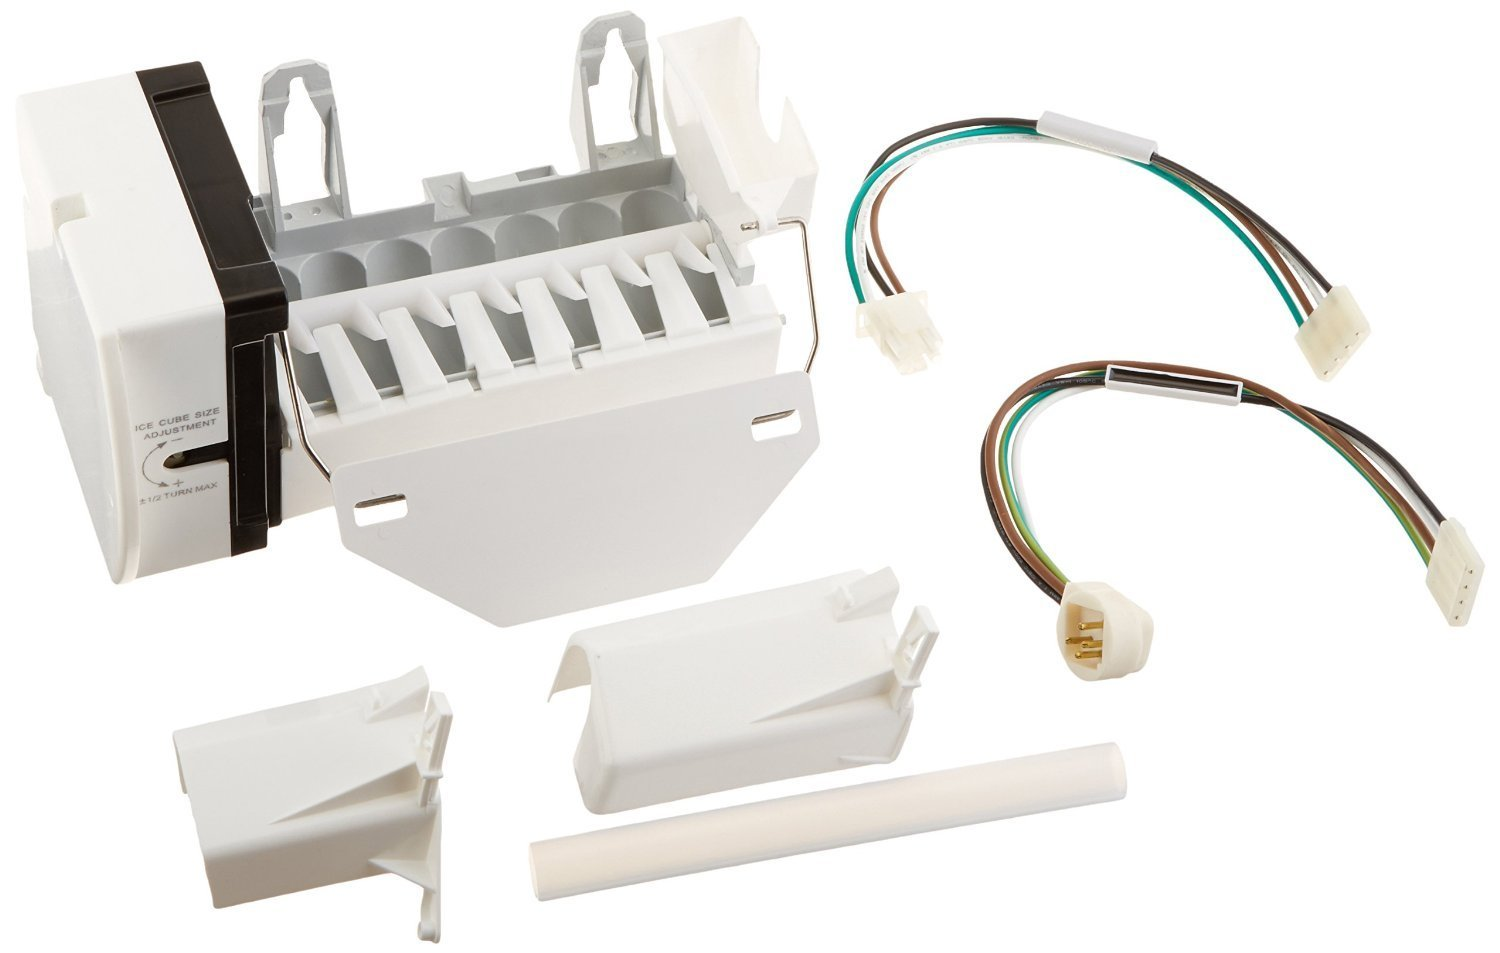 Compatible Ice Maker Kit for General Electric WR30X10012, General Electric PSI23SGPABS, General Electric PSH23PSRASV, General Electric GTS16BCSARCC Refrigerator